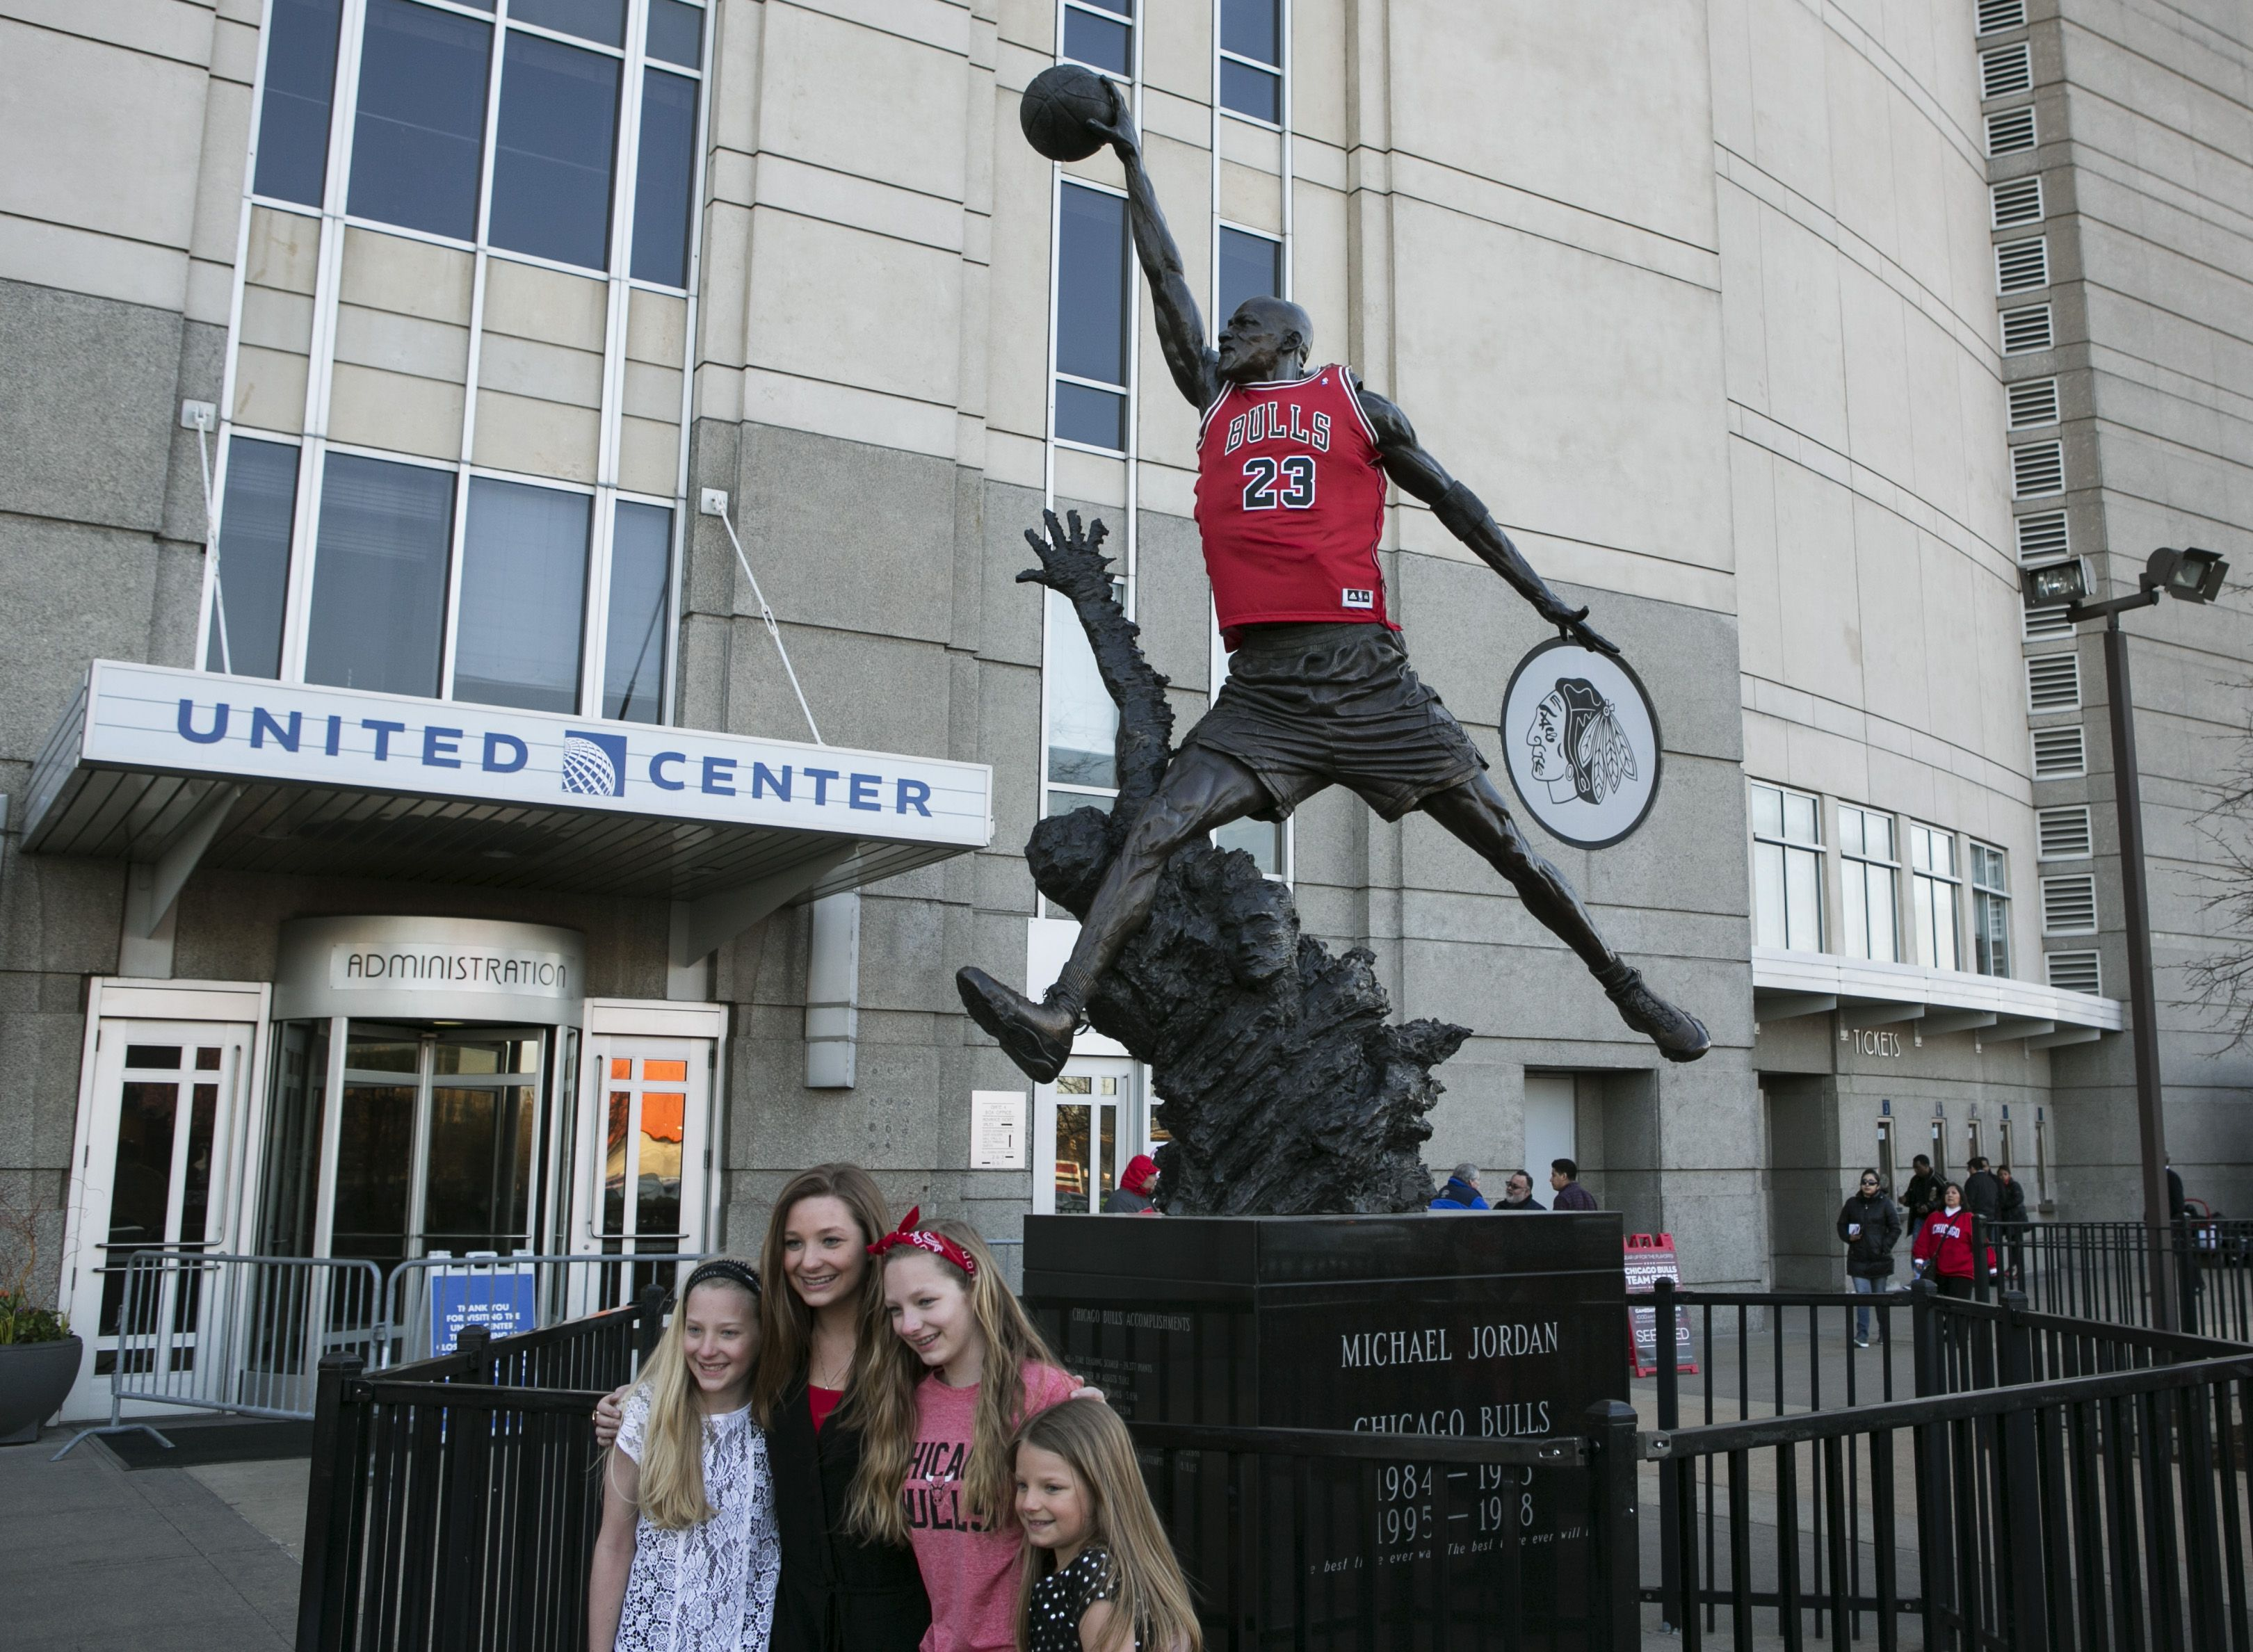 Estatua do Michael Air Jordan no United Center estadio do Chicago Bulls